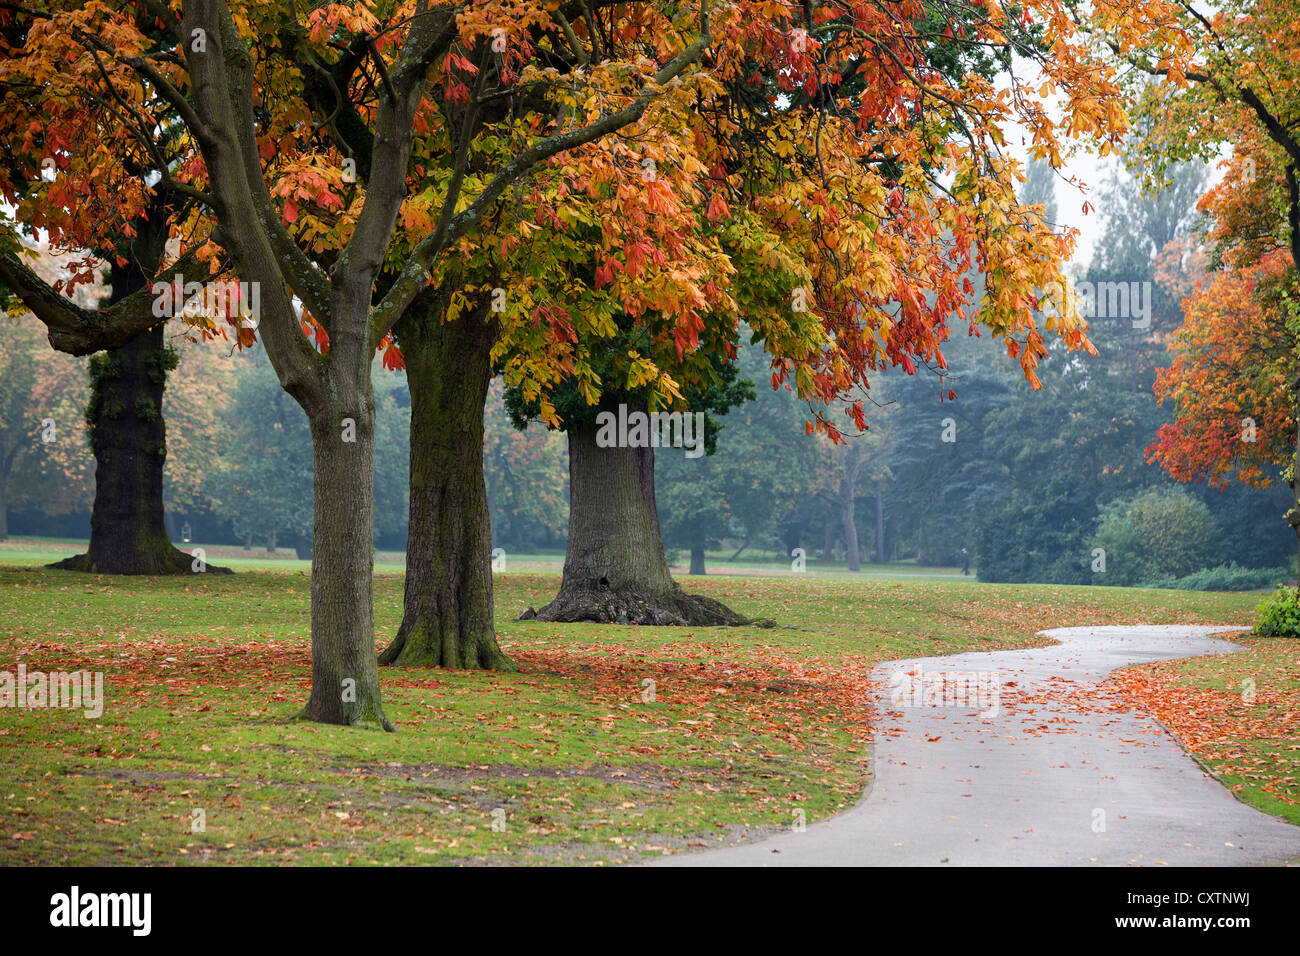 Autumn leaves in Cannon Hill park in Birmingham, UK - Stock Image